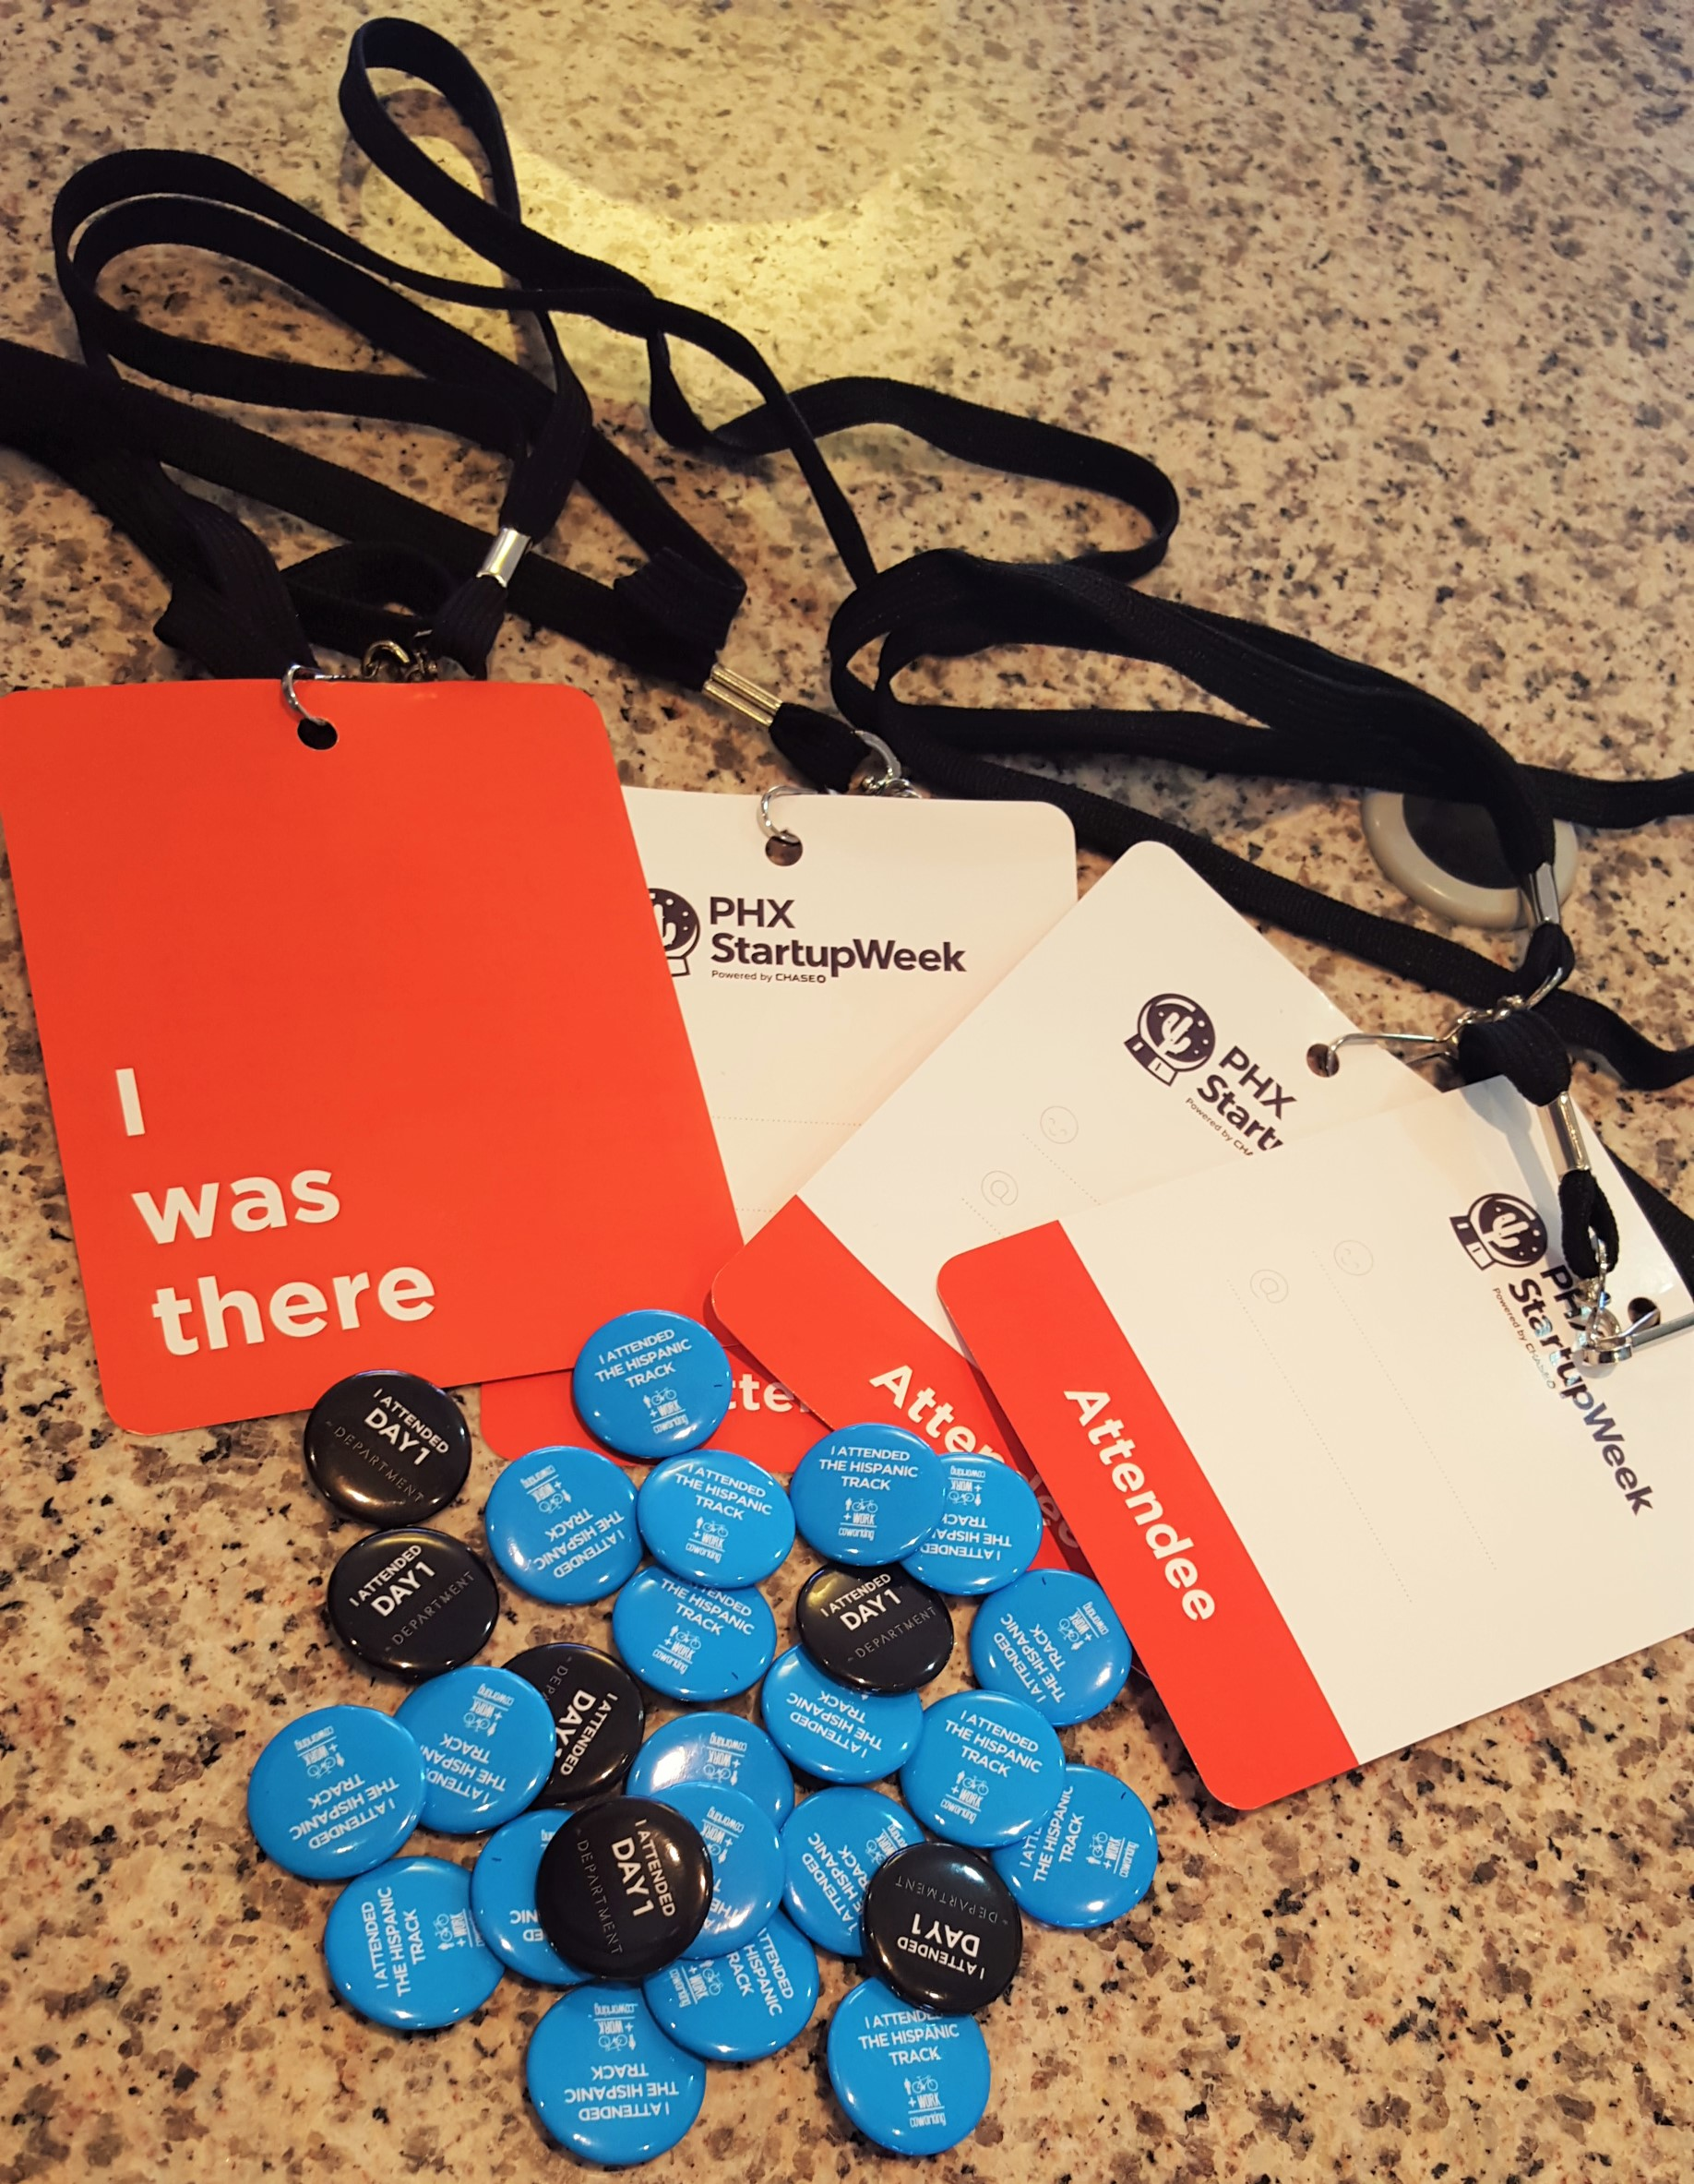 Fun buttons and lanyards form the event!